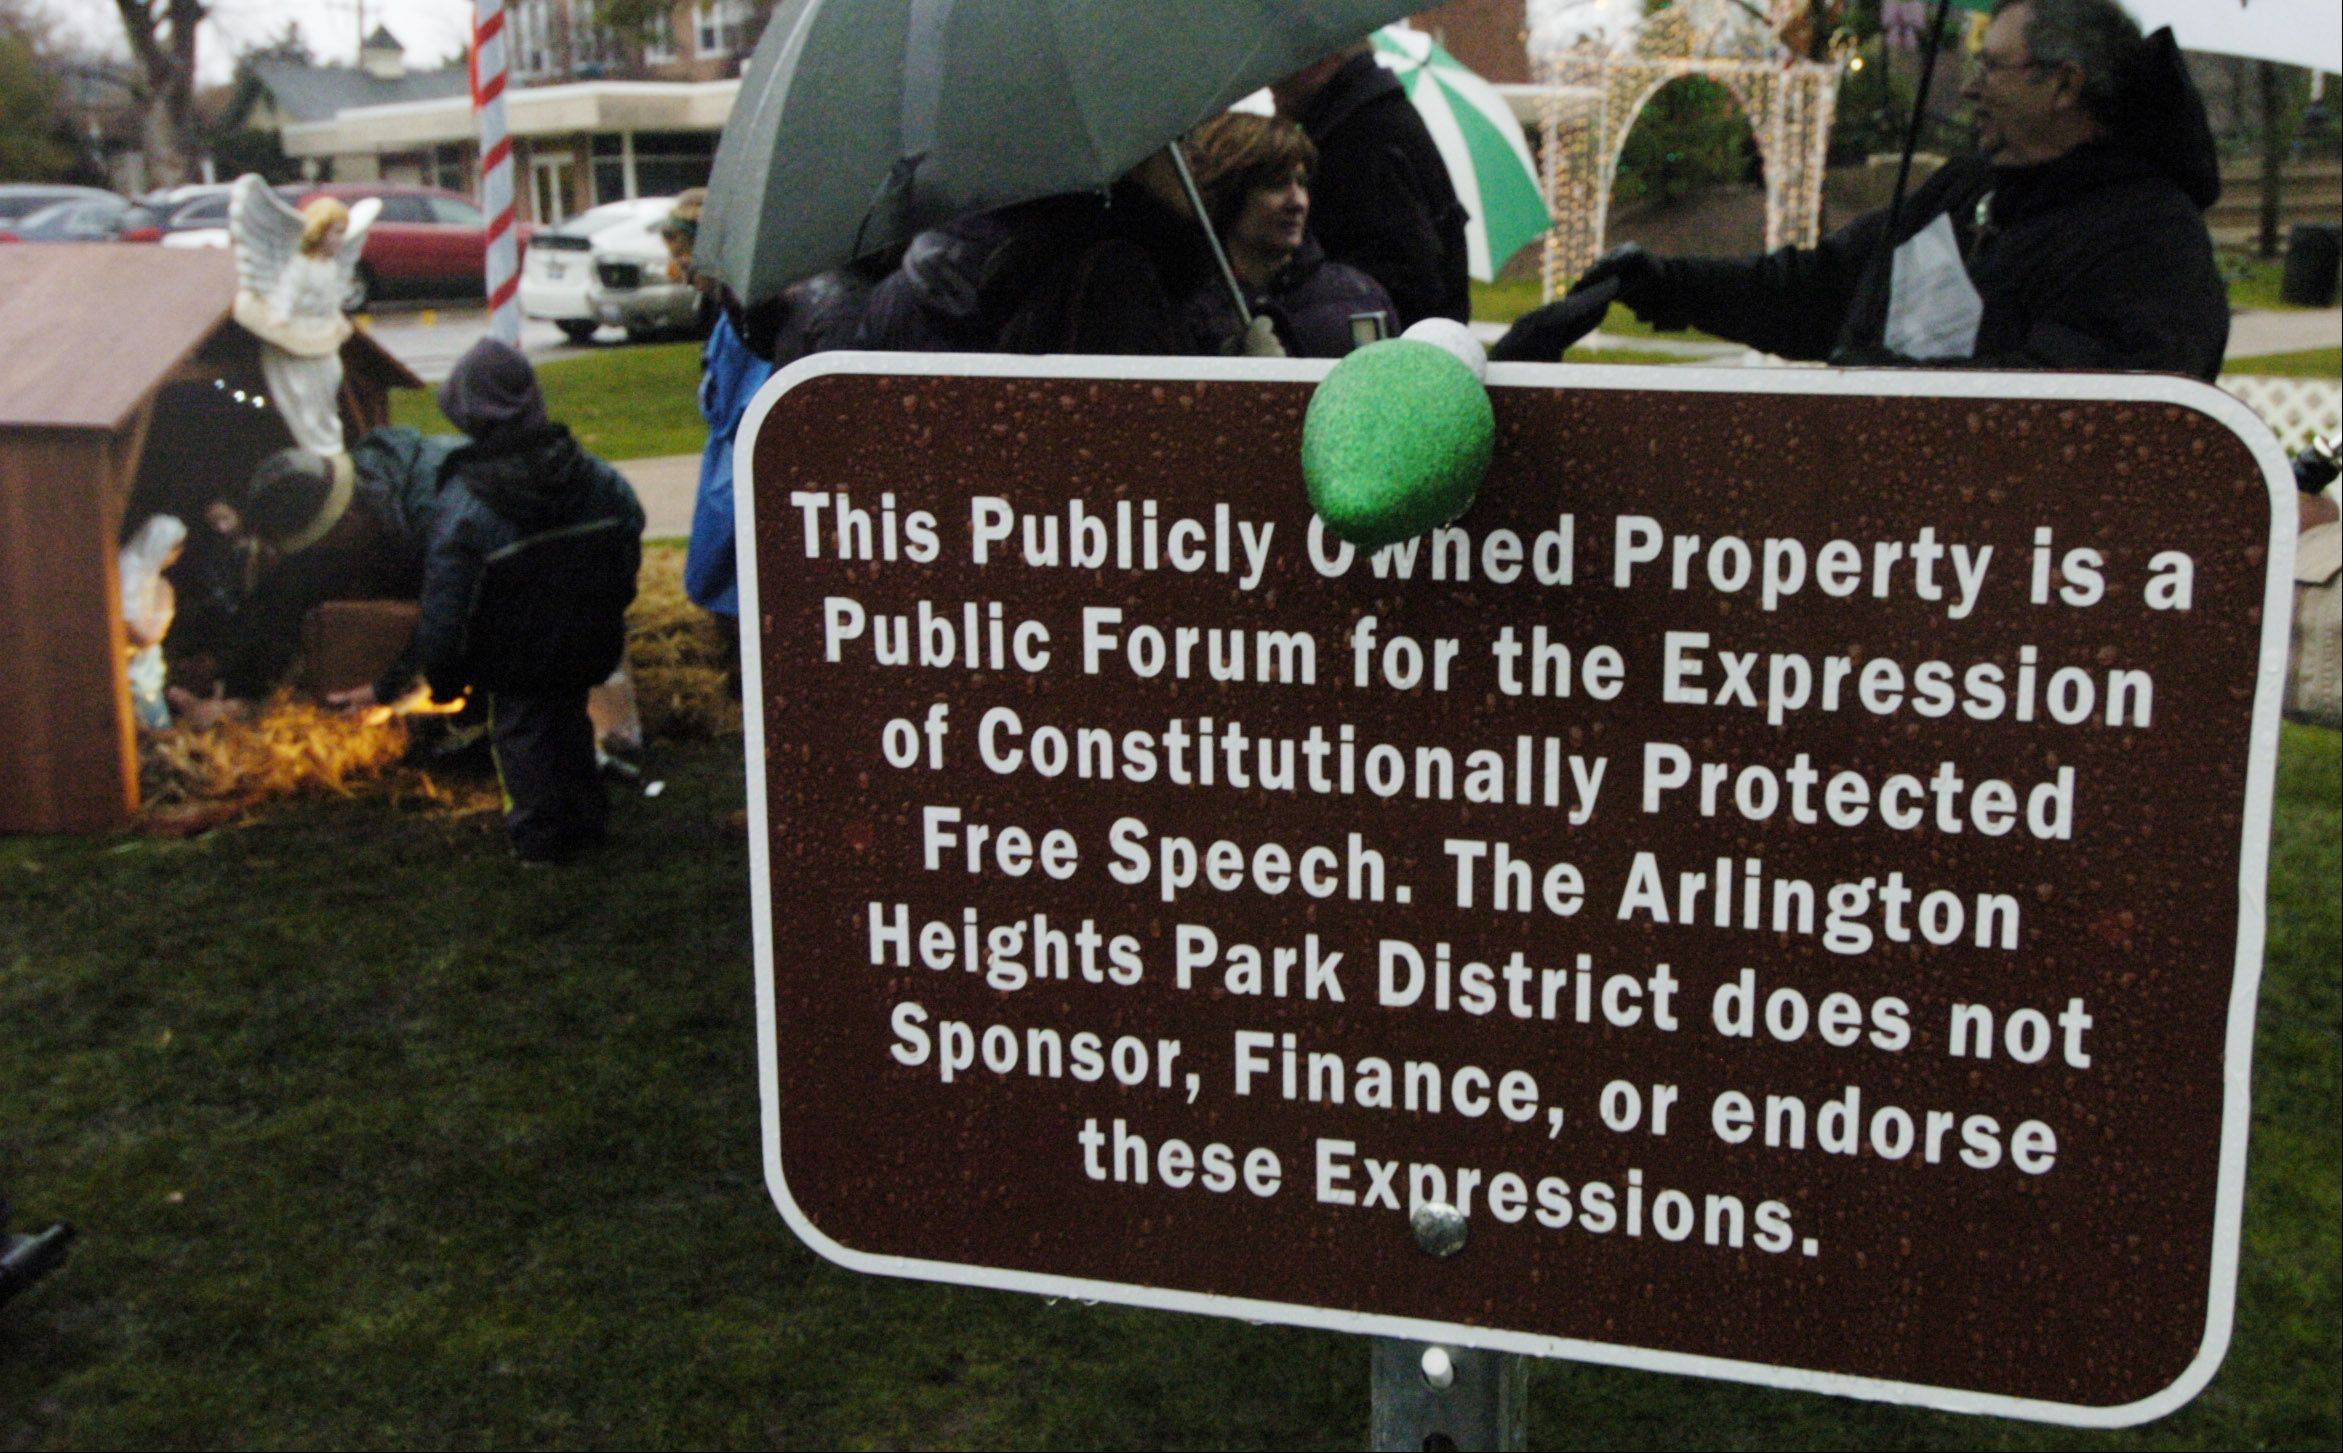 The Arlington Heights Park District placed this sign in near the Nativity scene installed Saturday in North School Park to explain the Illinois Nativity Scene Committee's First Amendment right to display it there separate from other holiday decorations.